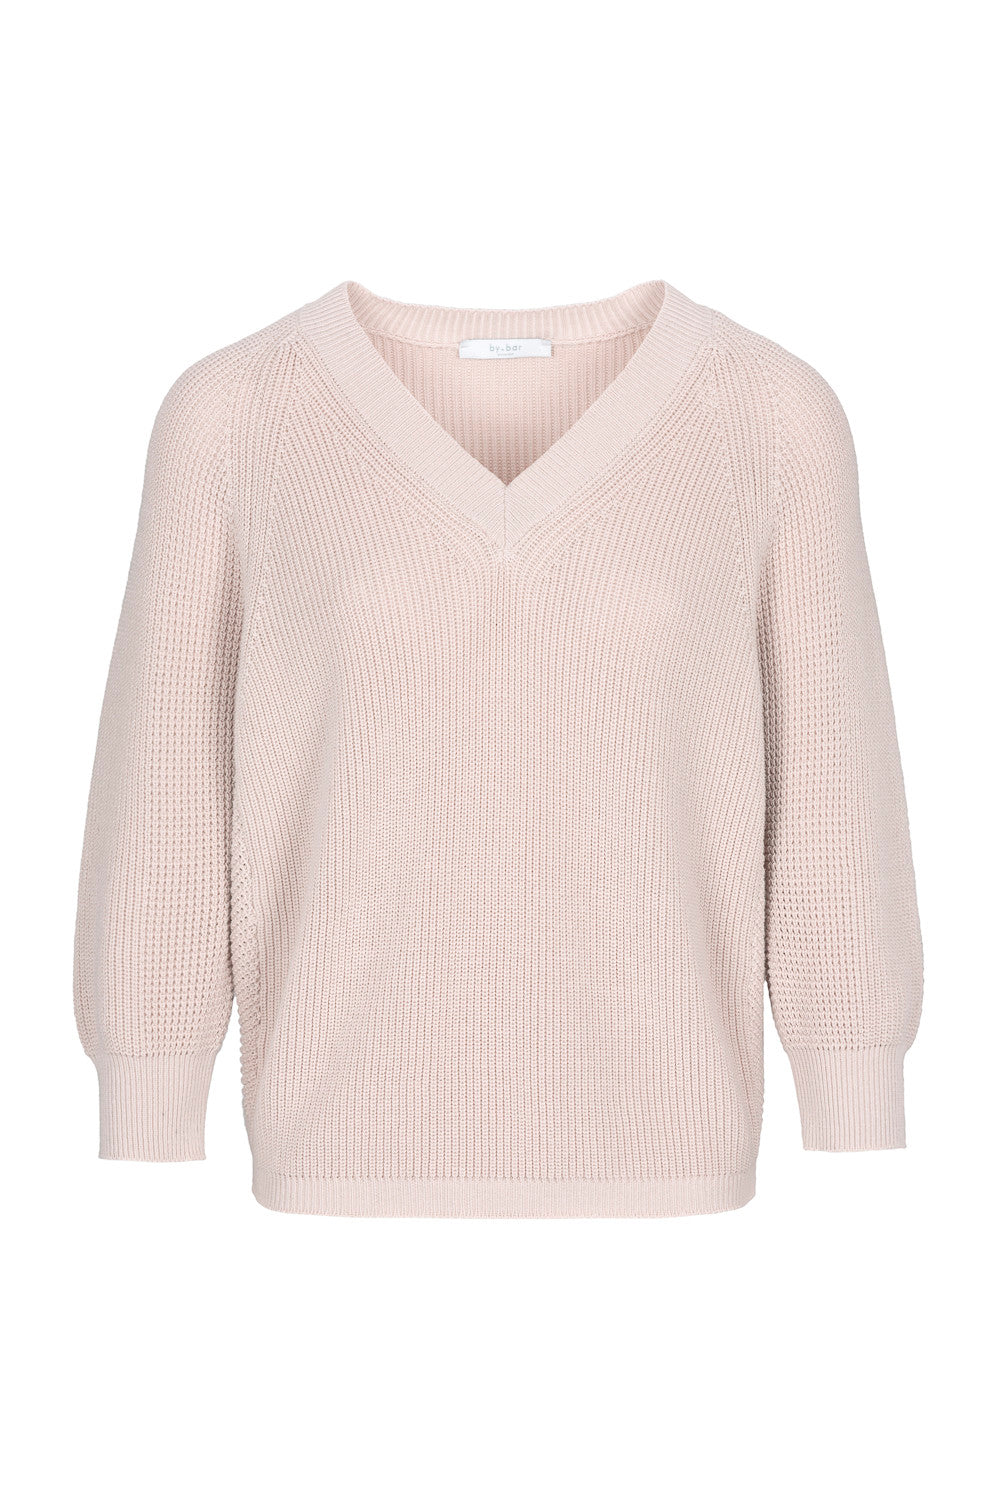 By-Bar - new lune pink blush pullover m